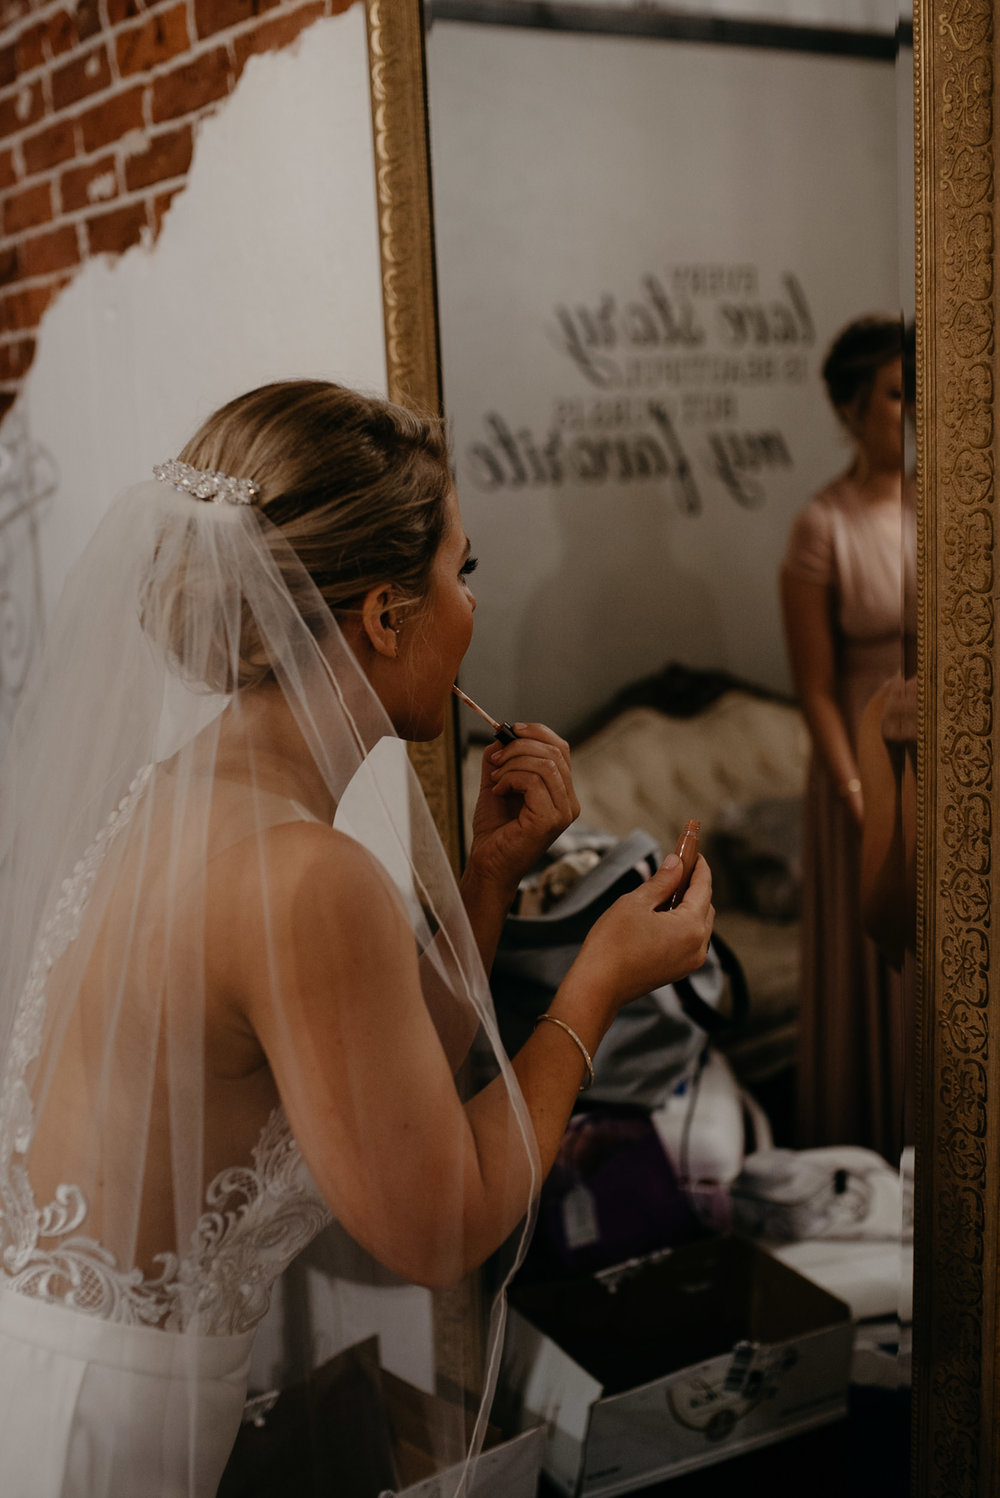 Getting ready photos at Moss. Downtown Denver wedding photography